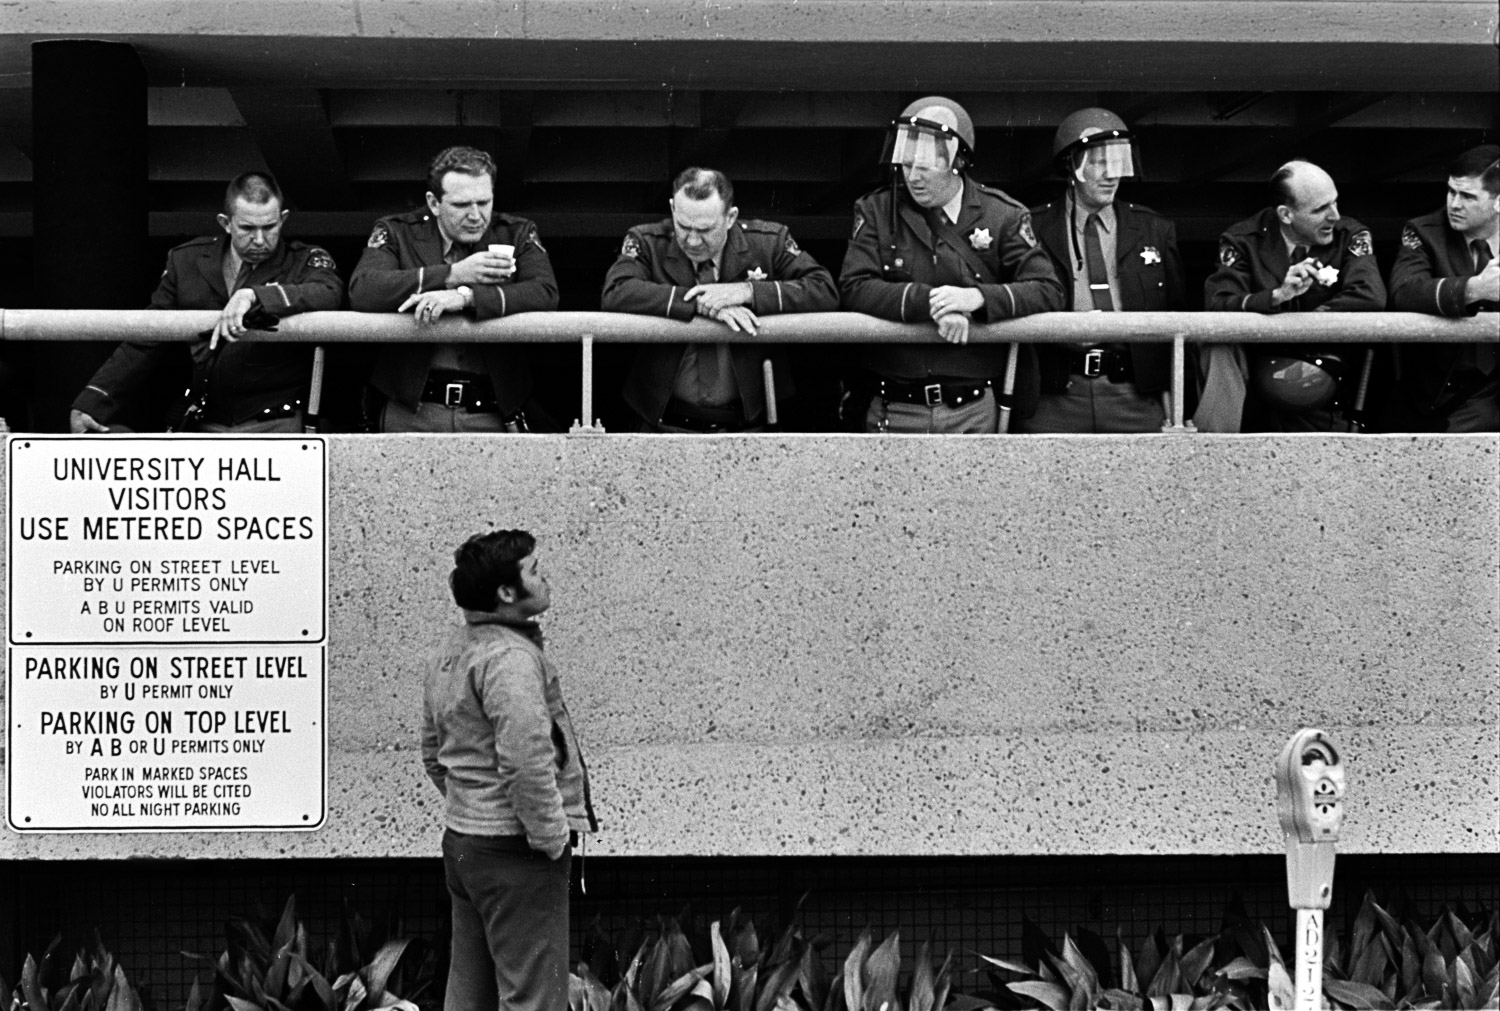 Berkeley police were accustomed to calmer moments, when conversations with the public were easy going